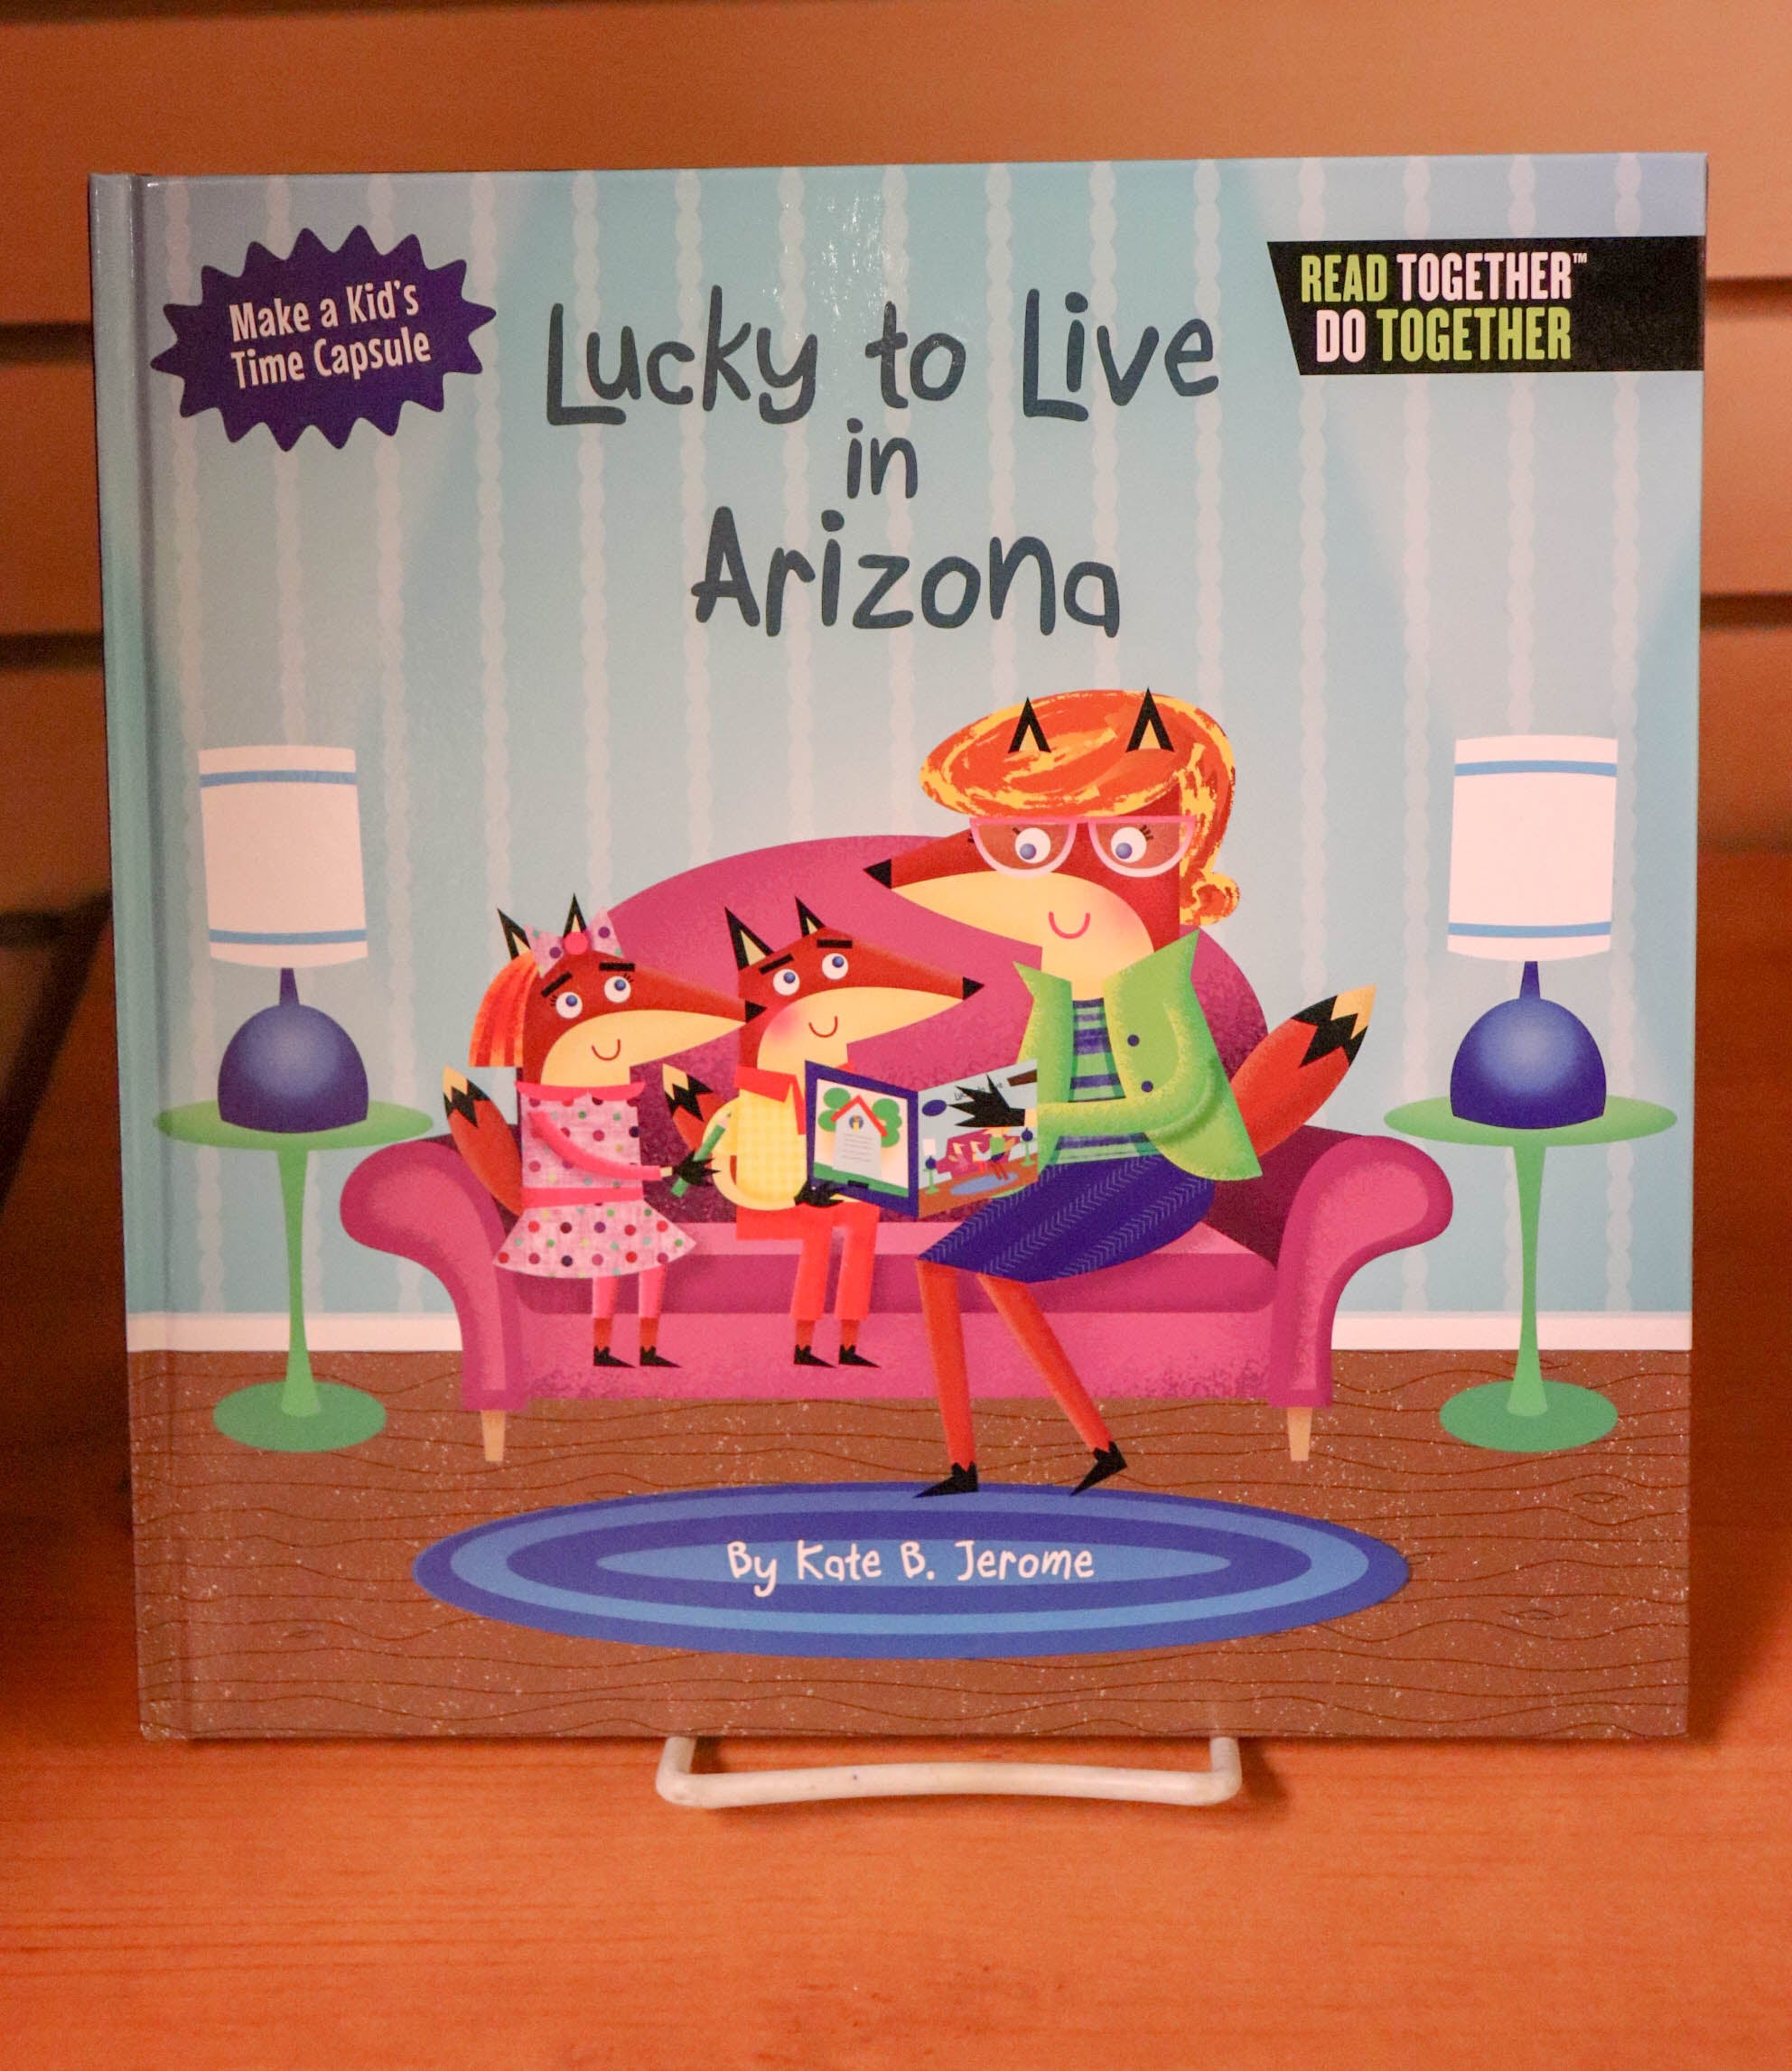 Lucky to Live in Arizona by Kate B. Jerome